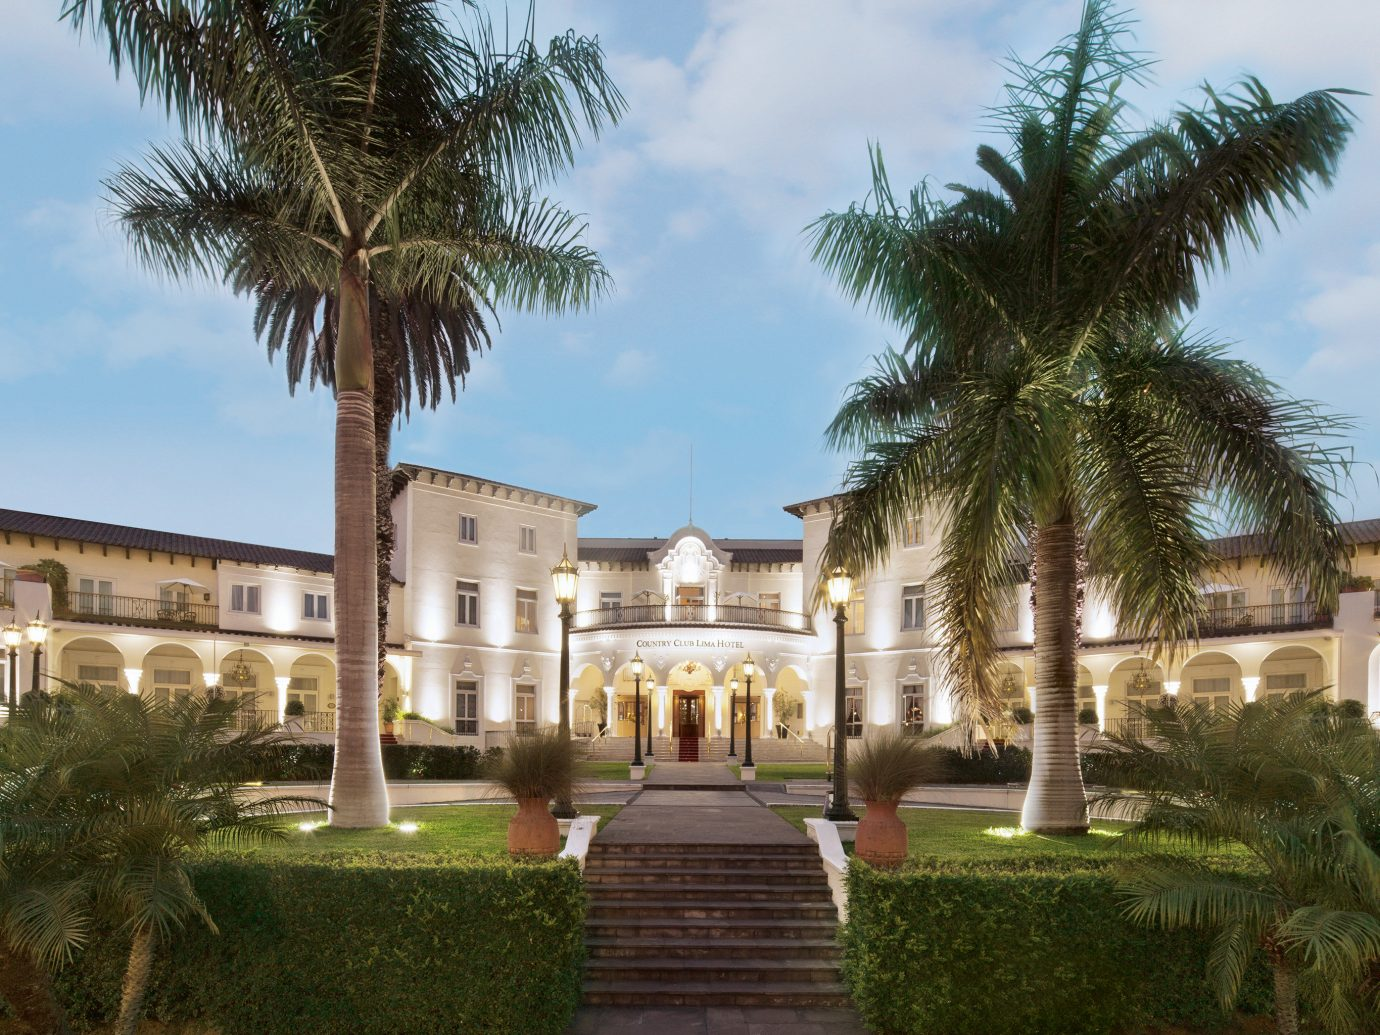 Architecture Boutique Hotels Buildings Design Exterior Hotels Resort Romance sky outdoor tree grass property plant estate building palace palm vacation arecales plaza mansion home hacienda Villa Courtyard Garden